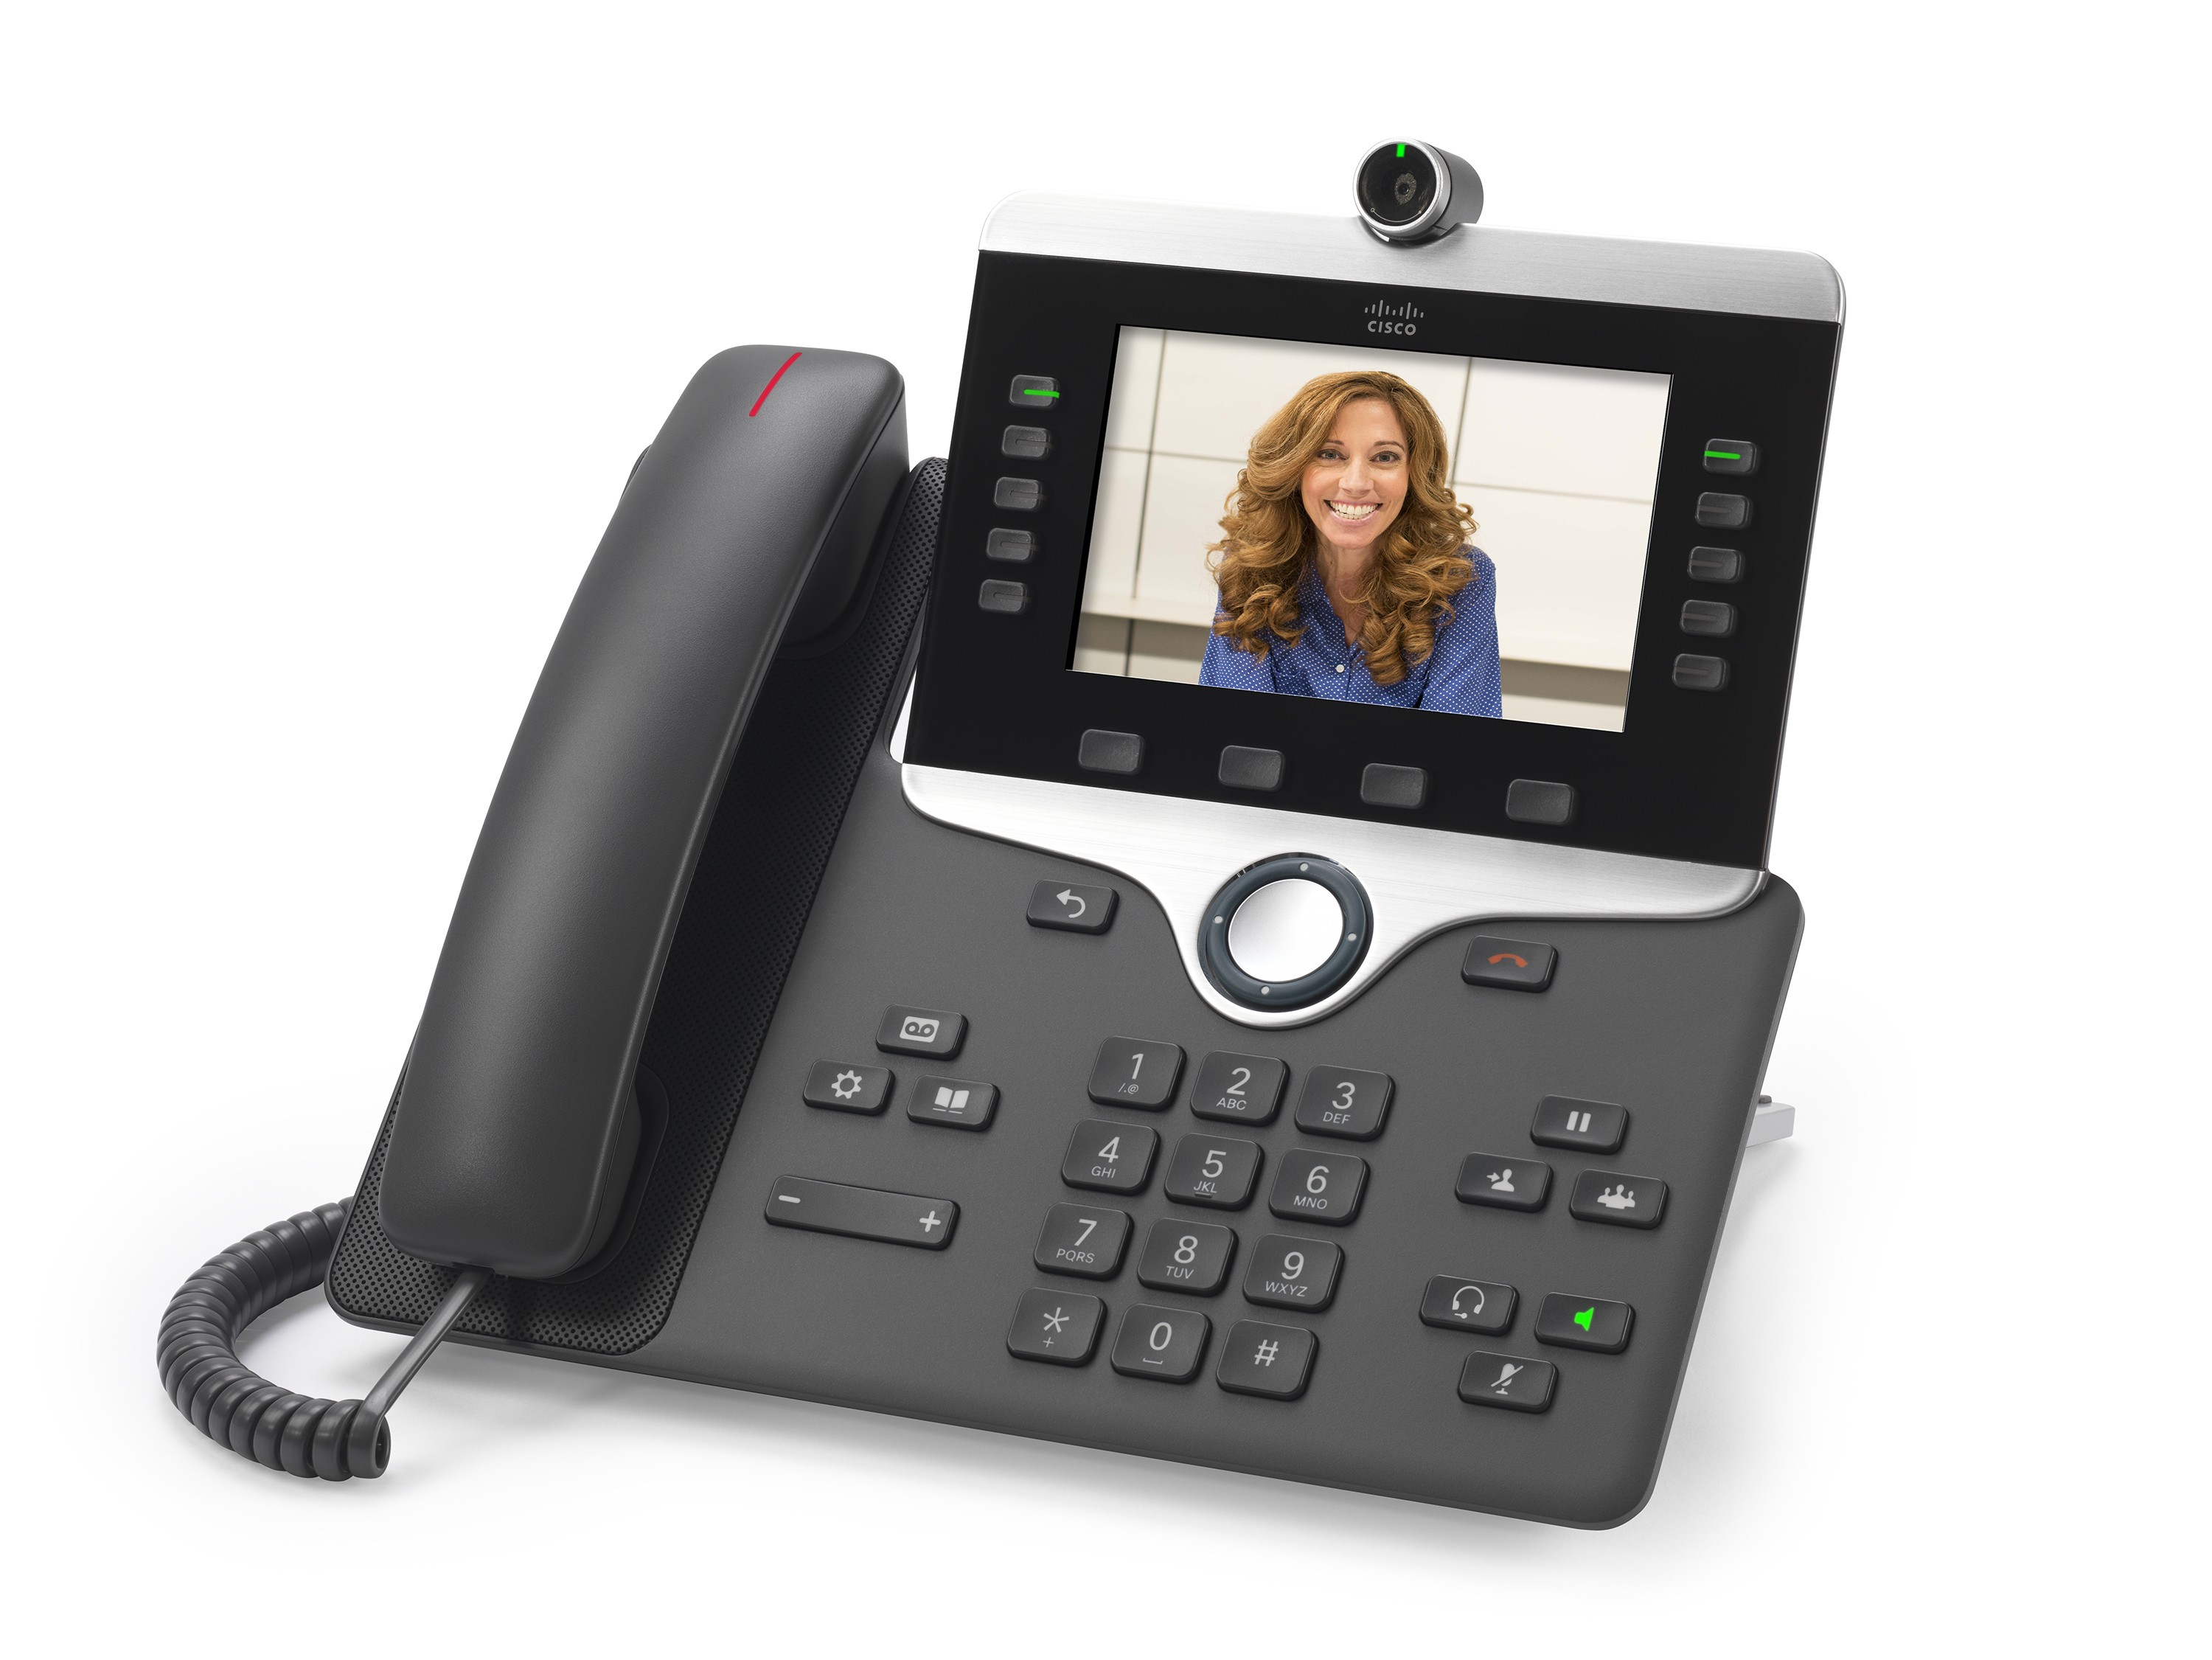 Cisco 8865 Unified IP Video Phone With High Resolution Screen